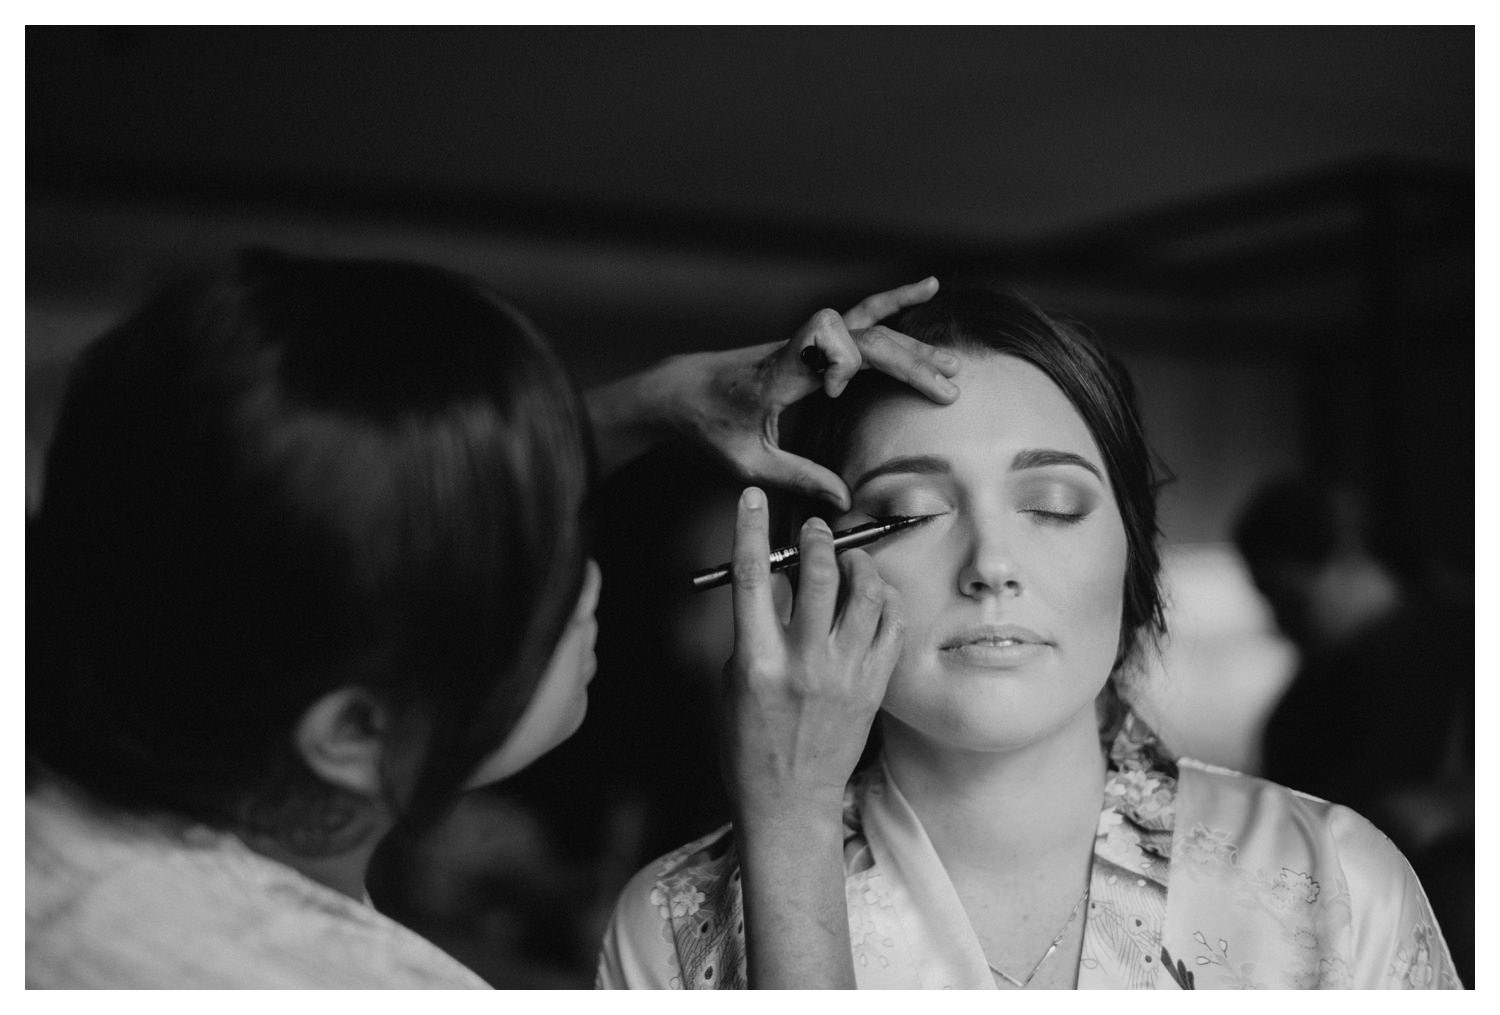 The bride has her make-up applied on her wedding day